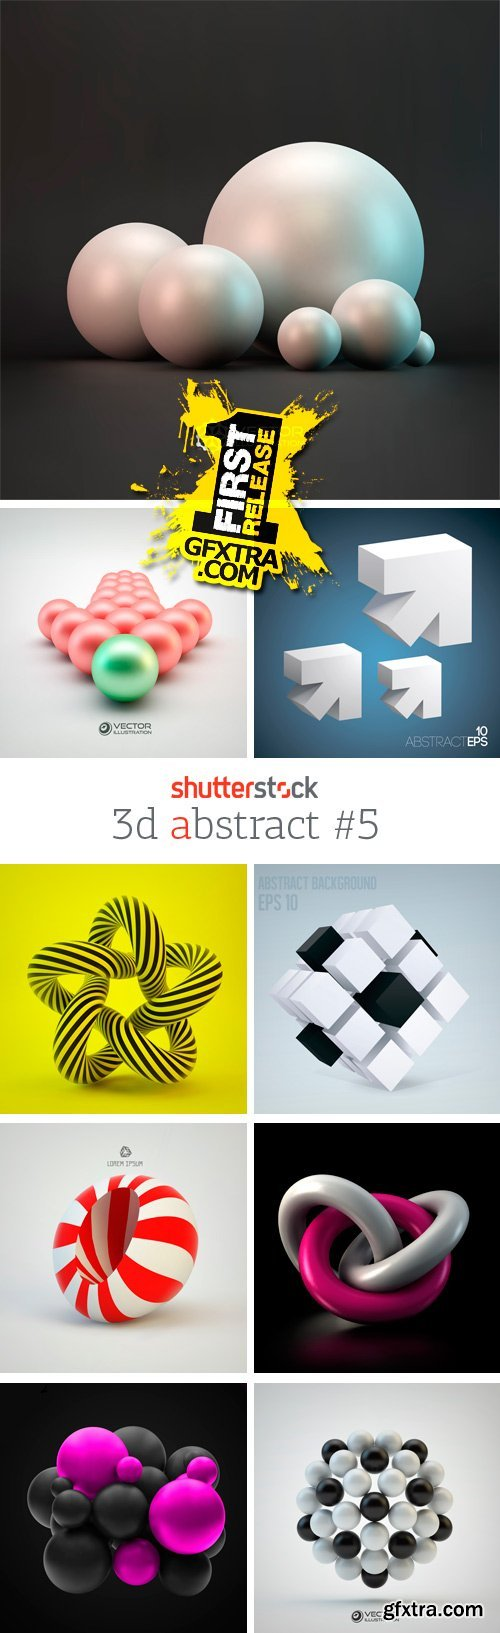 Amazing SS - 3D Abstract 5, 25xEPS